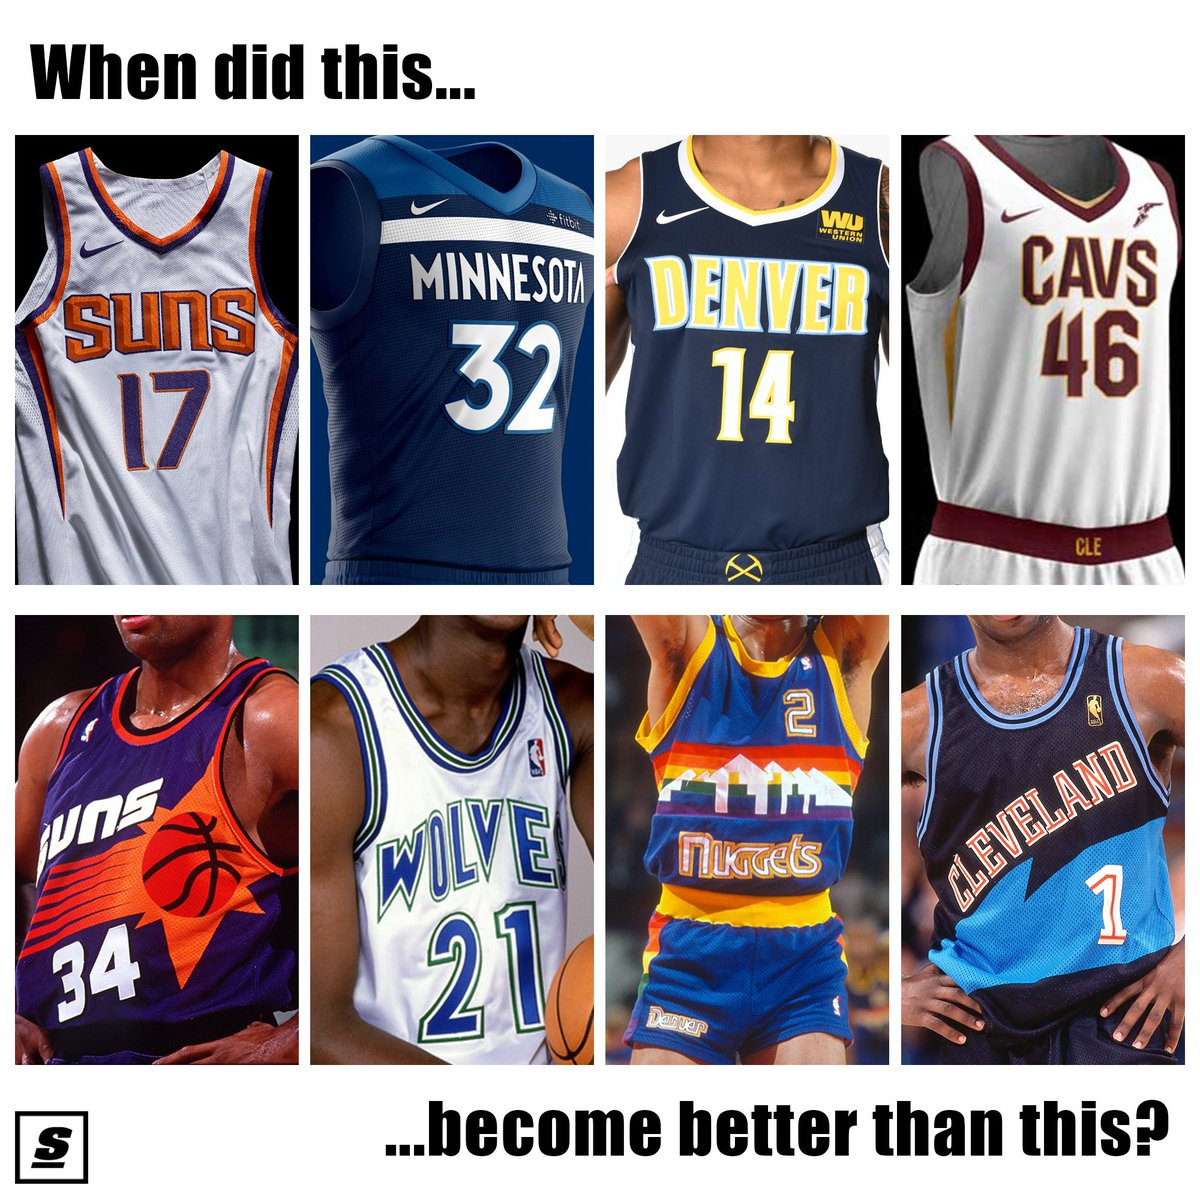 old school cavs jersey